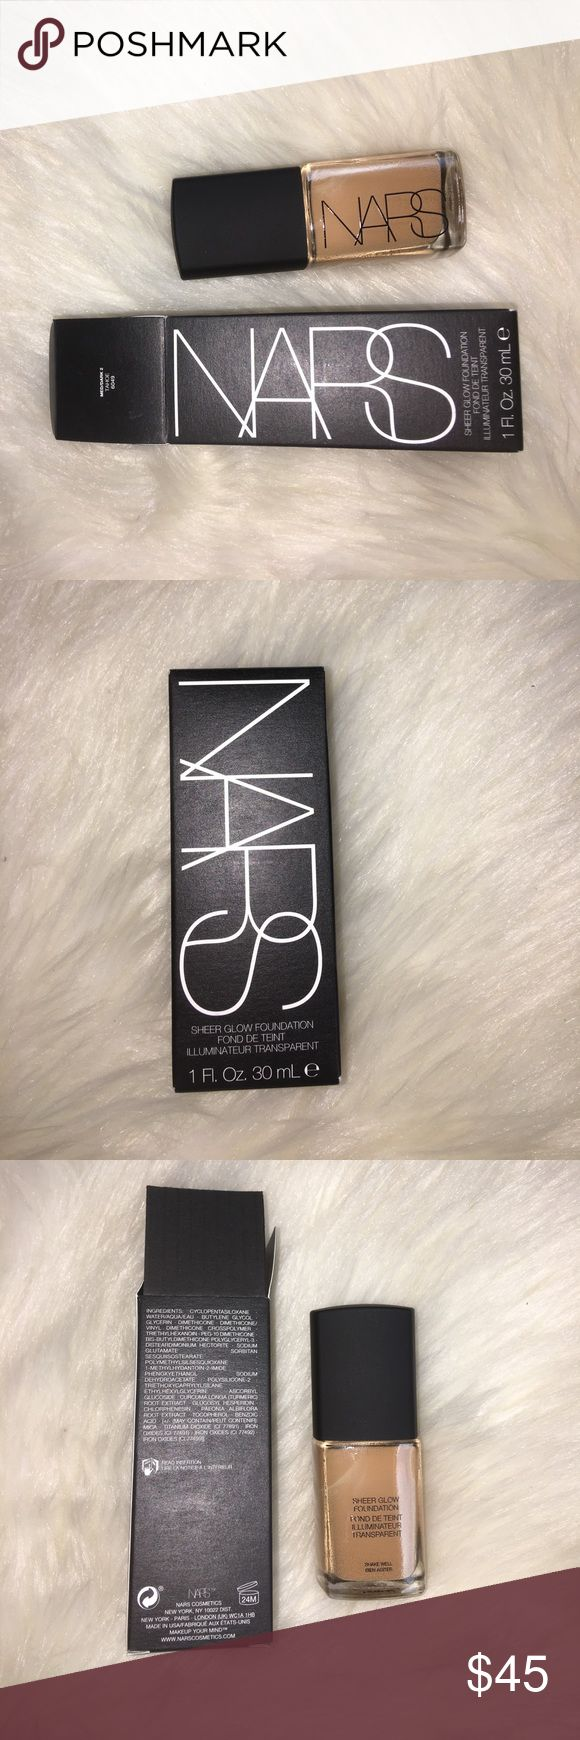 NARS Sheer Glow Foundation: MED/DARK 2 TAHOE NARS Sheer Glow Foundation: MED/DARK 2 TAHOE 6049. Brand New. Never used. 100% of product in bottle. 100% Authentic. No trades. NARS Makeup Foundation